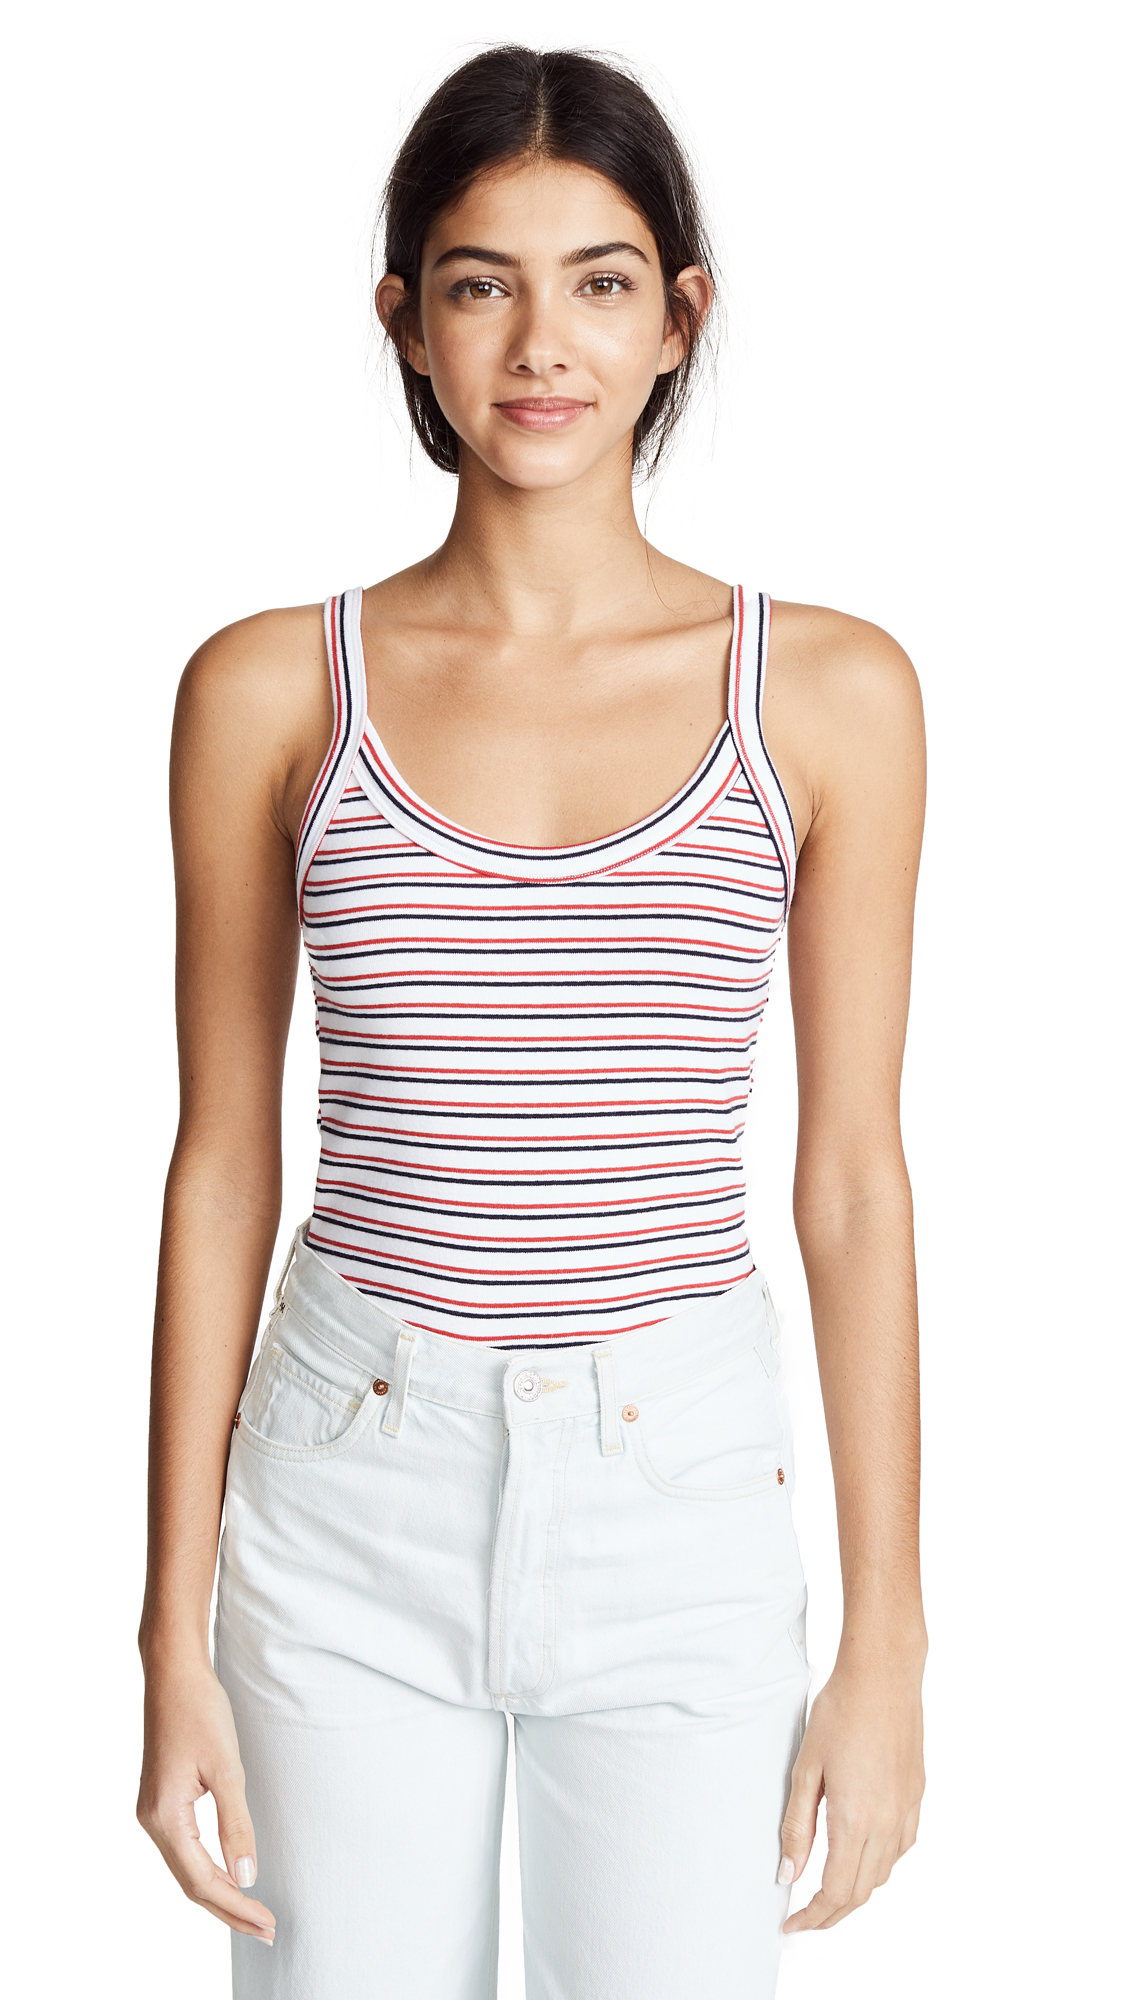 LIANA CLOTHING The Stria Tank in Red/Navy/White